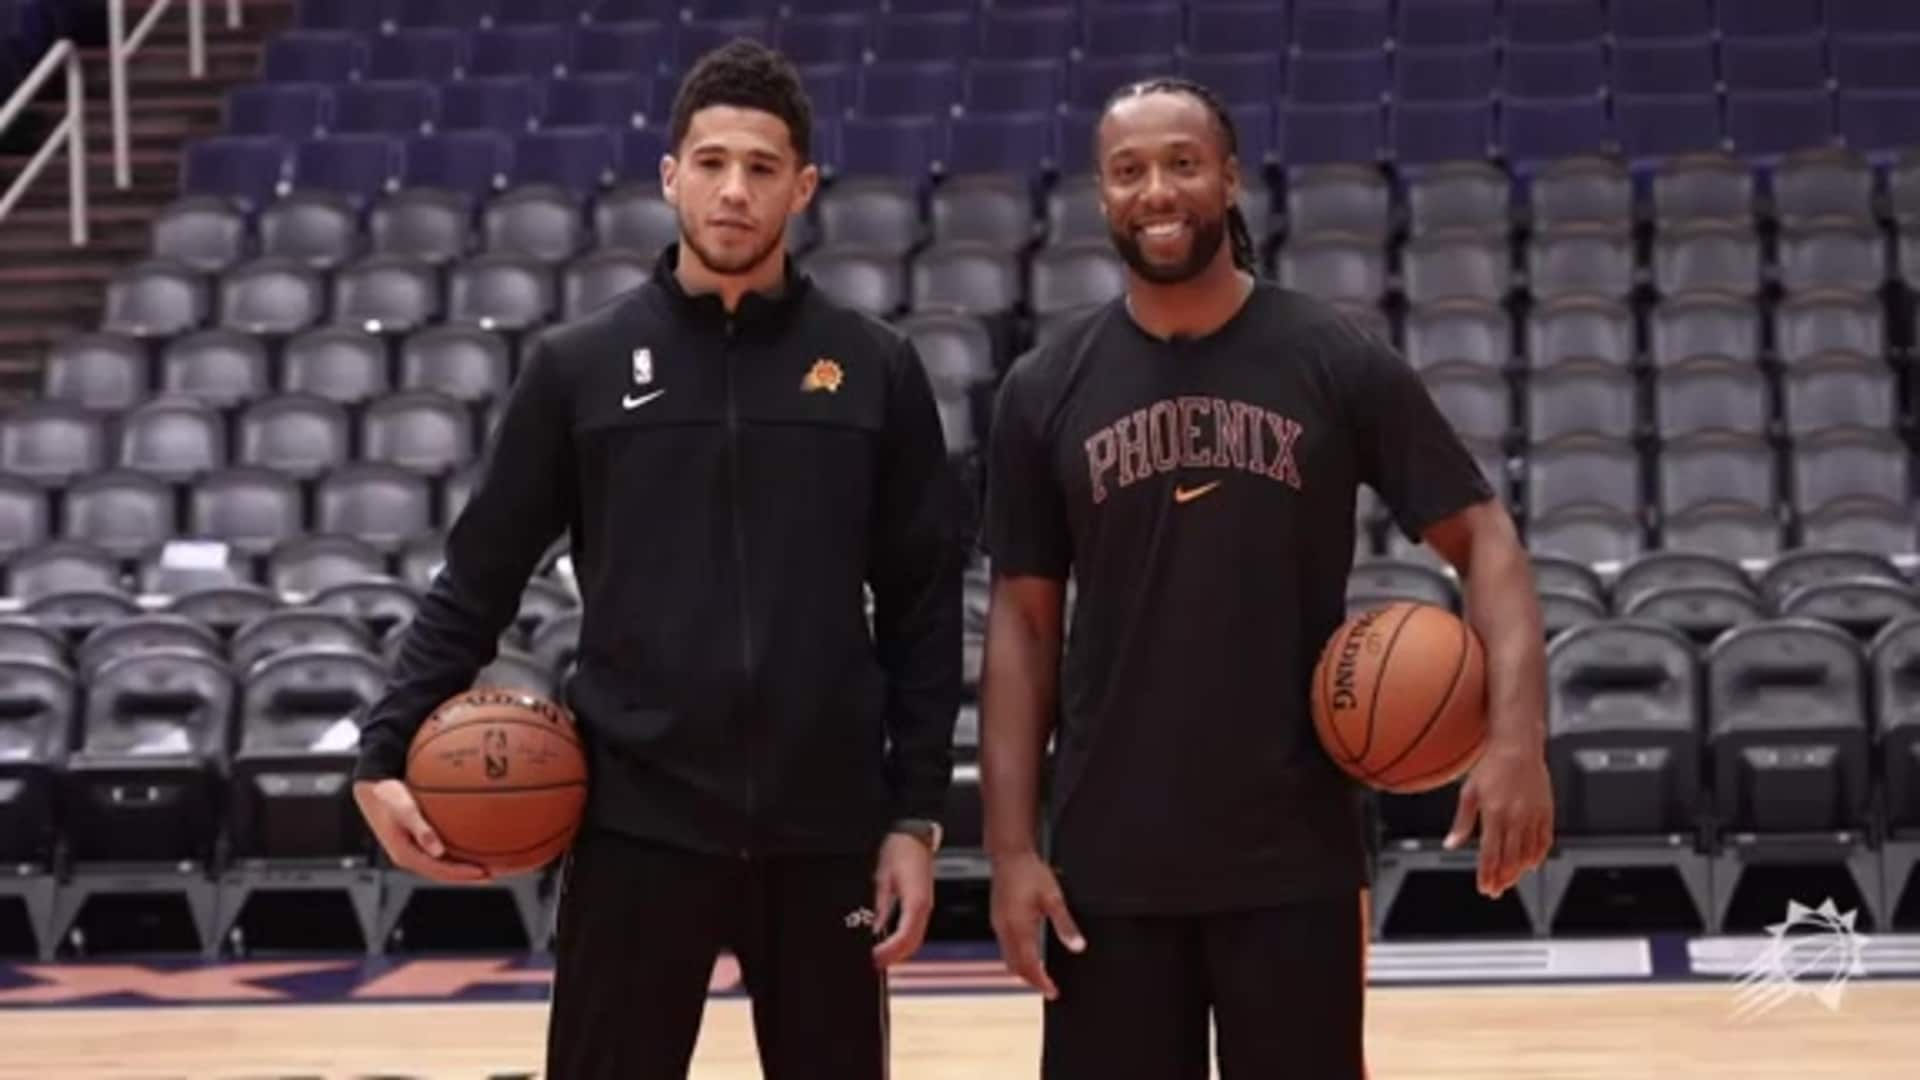 Suns Gameday 2019-20: Suns vs. Pacers